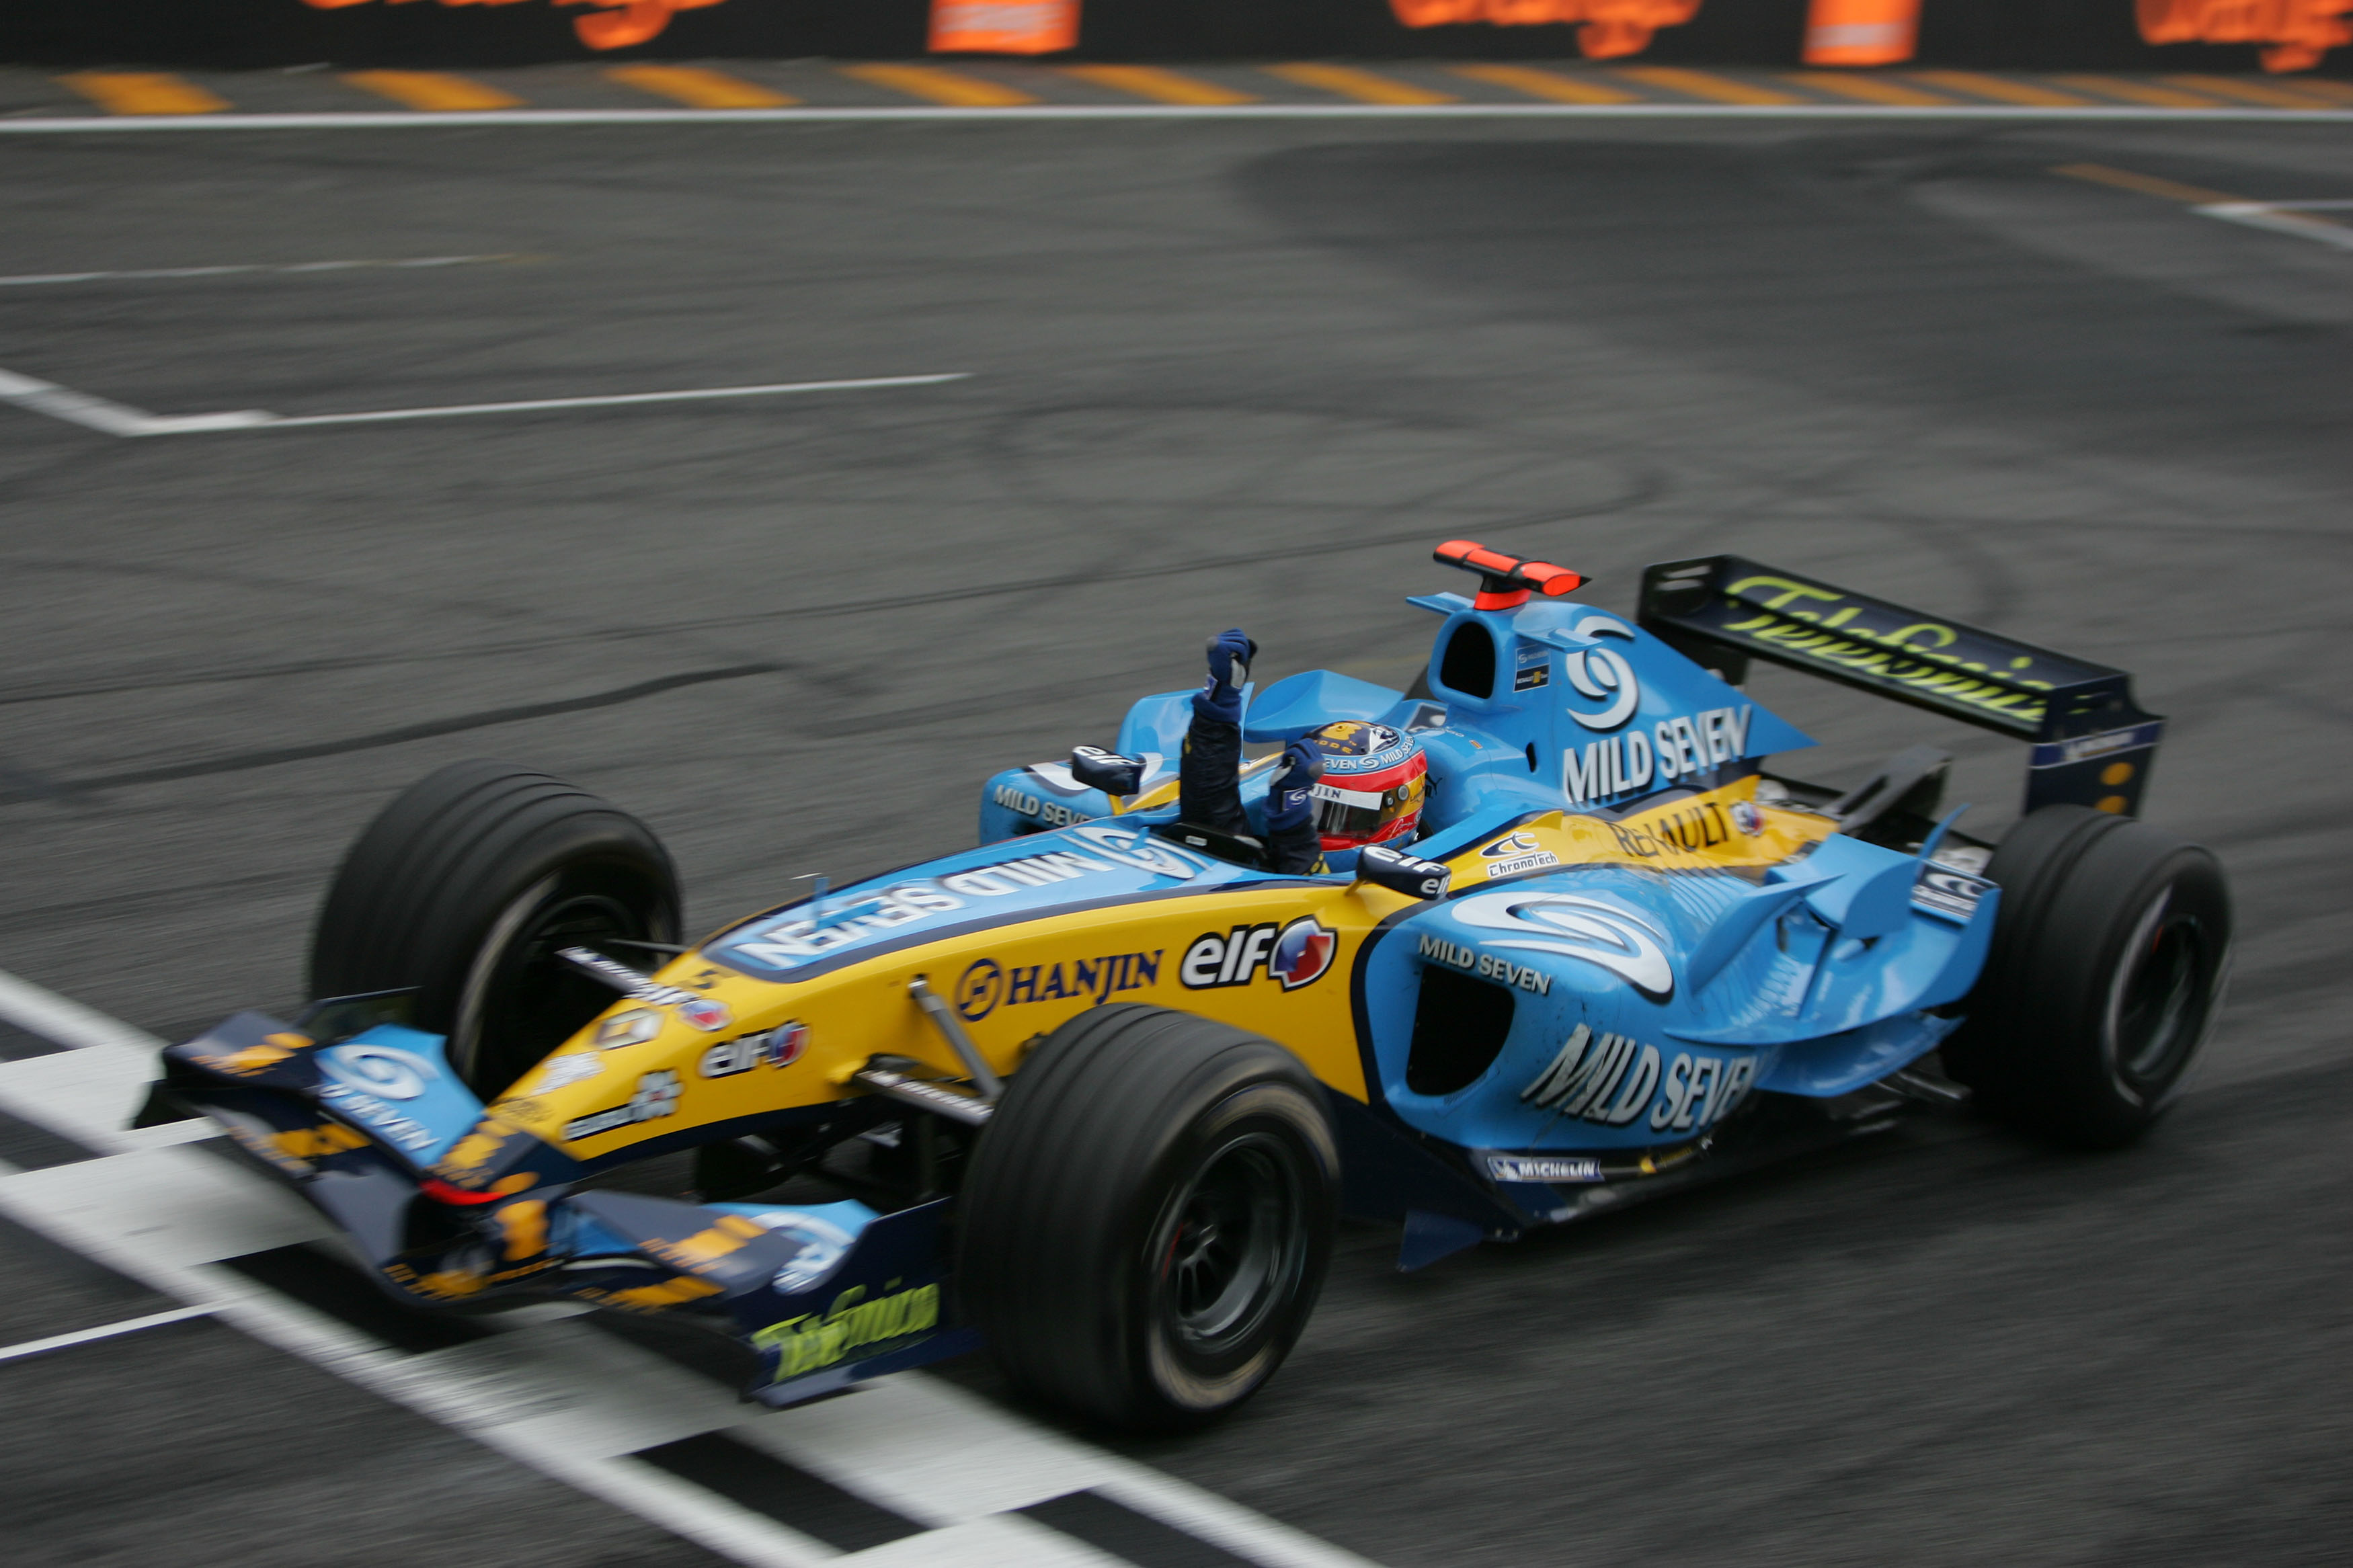 Fernando Alonso Renault wins 2005 F1 world championship